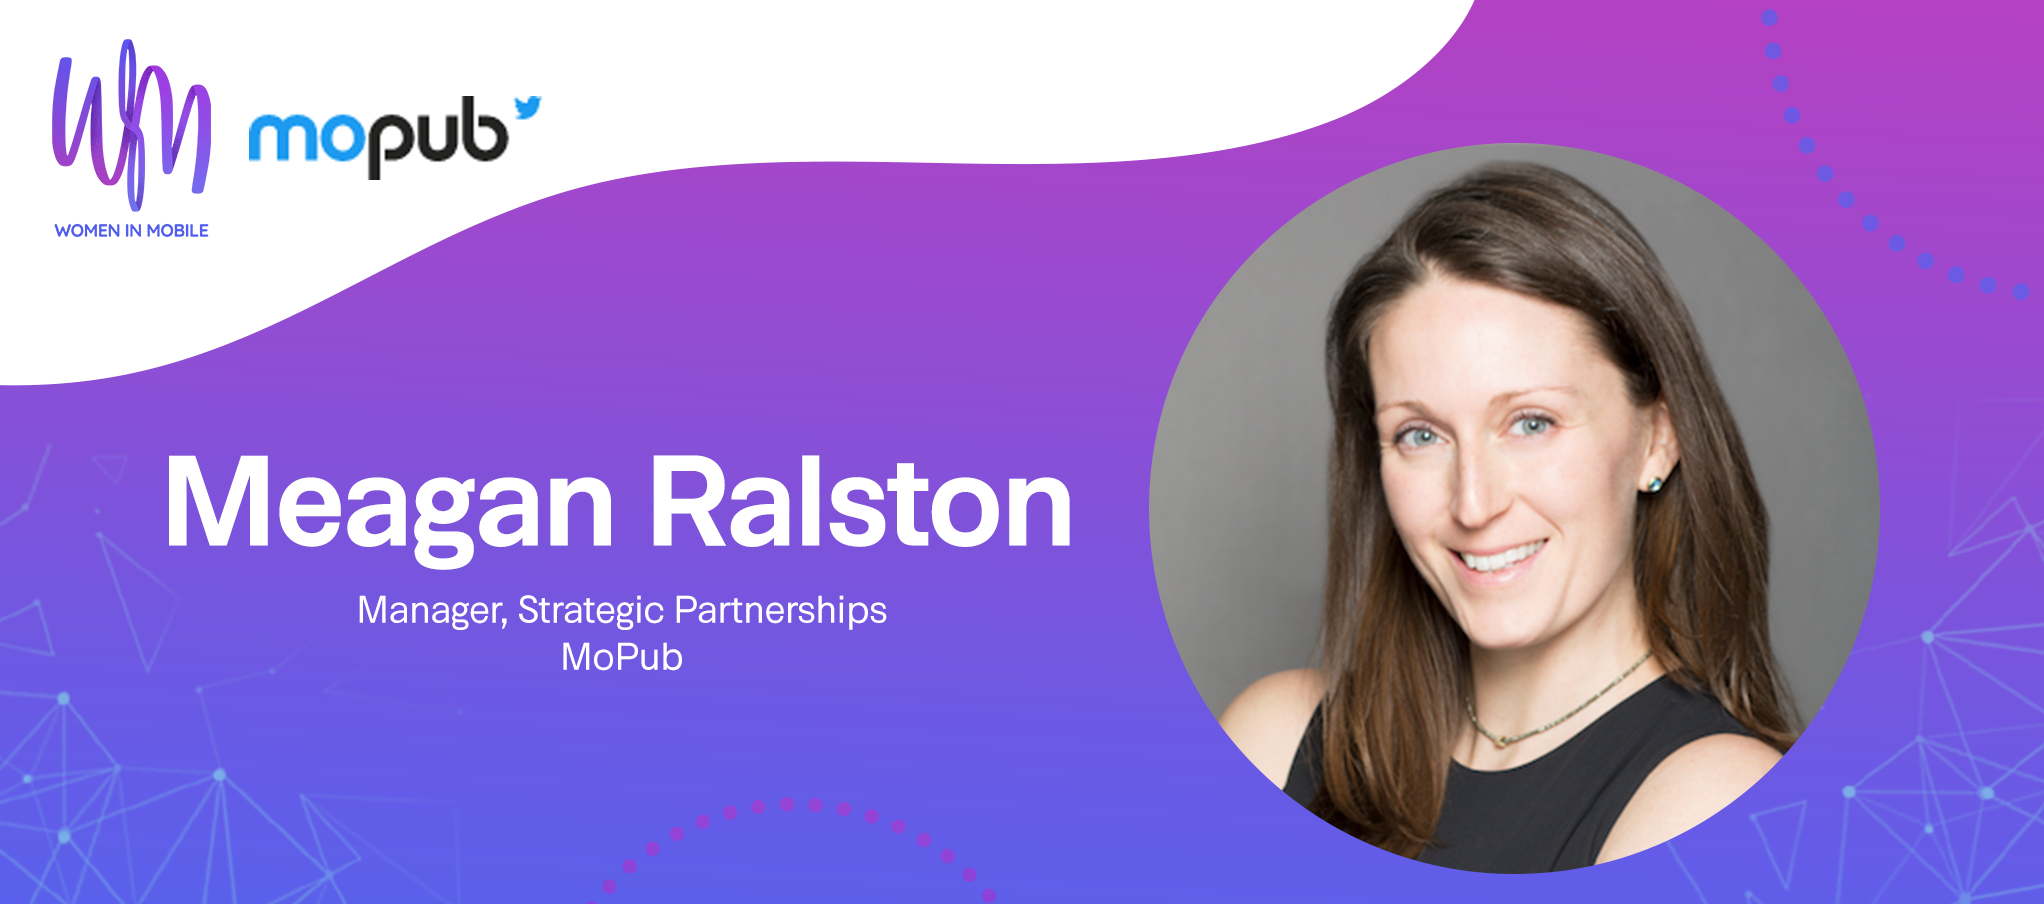 Meagan Ralston Manager, Strategic Partnerships at MoPub at Aarki's Women in Mobile series